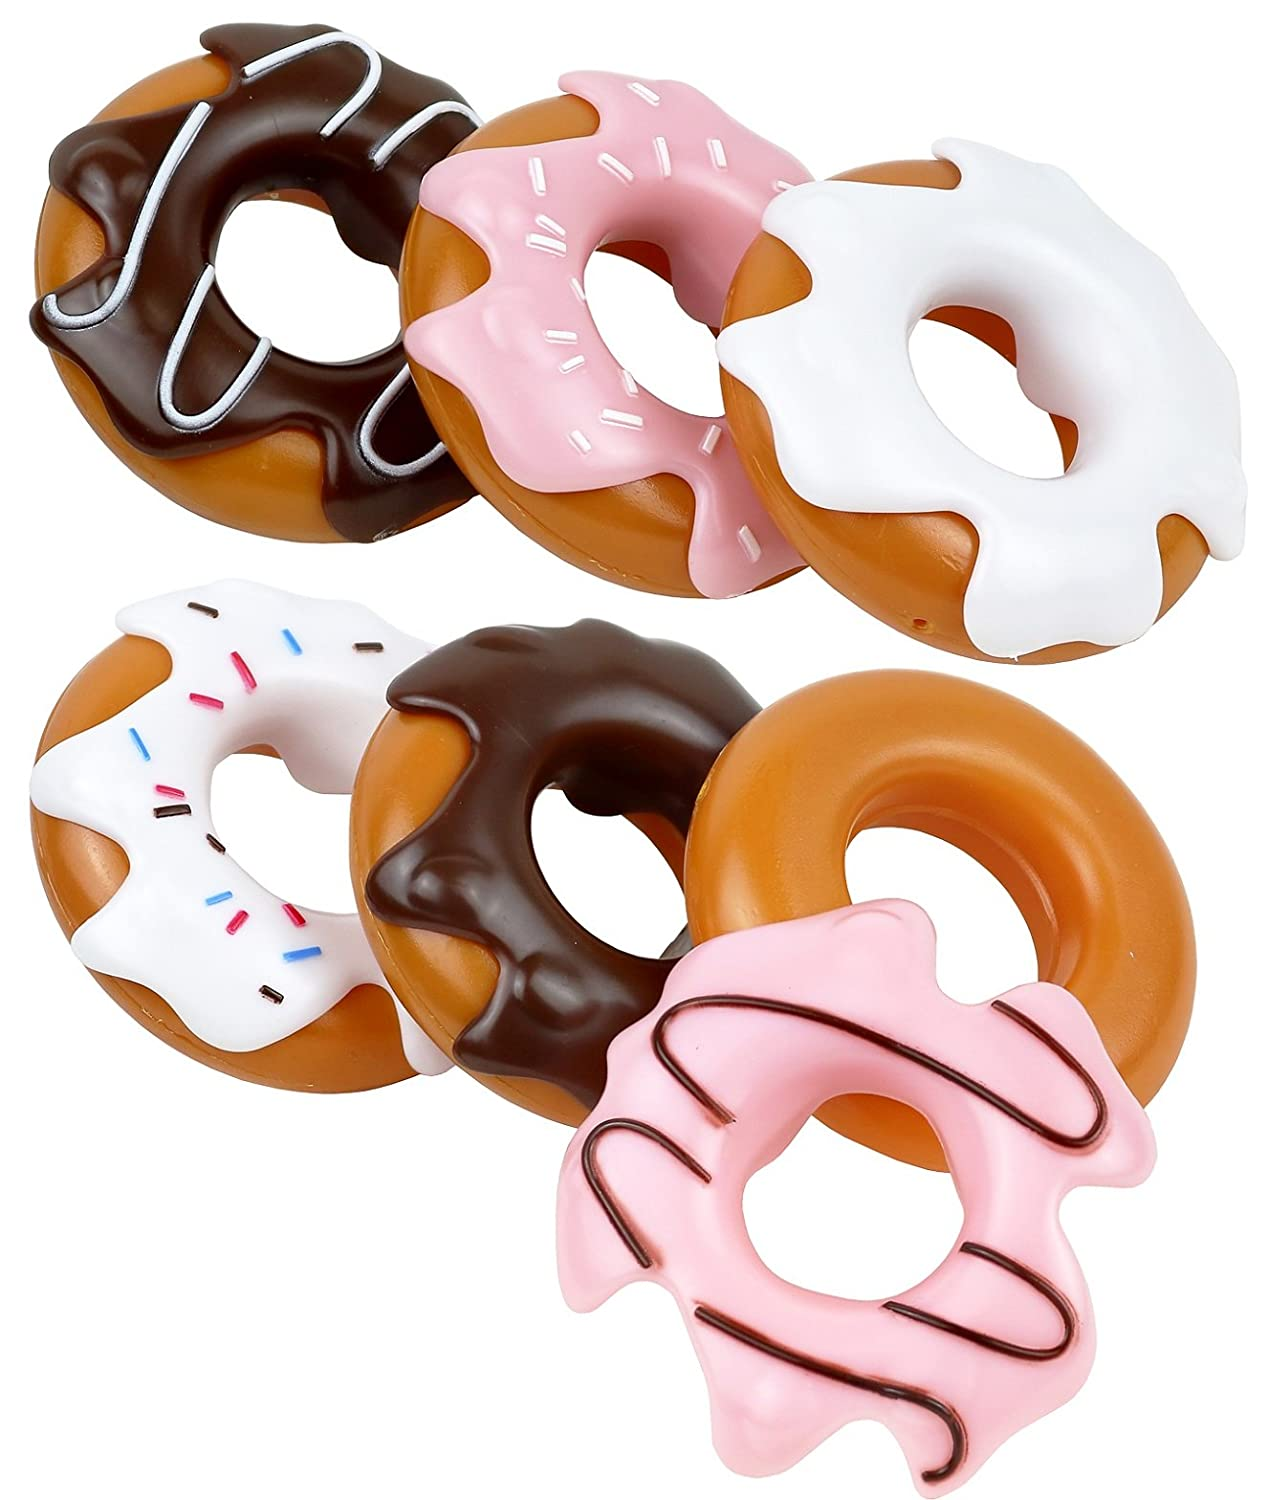 Click N Play set di 6 assortiti pretend Play Donuts set rimovibile con glassa, Sprinkle Toppings